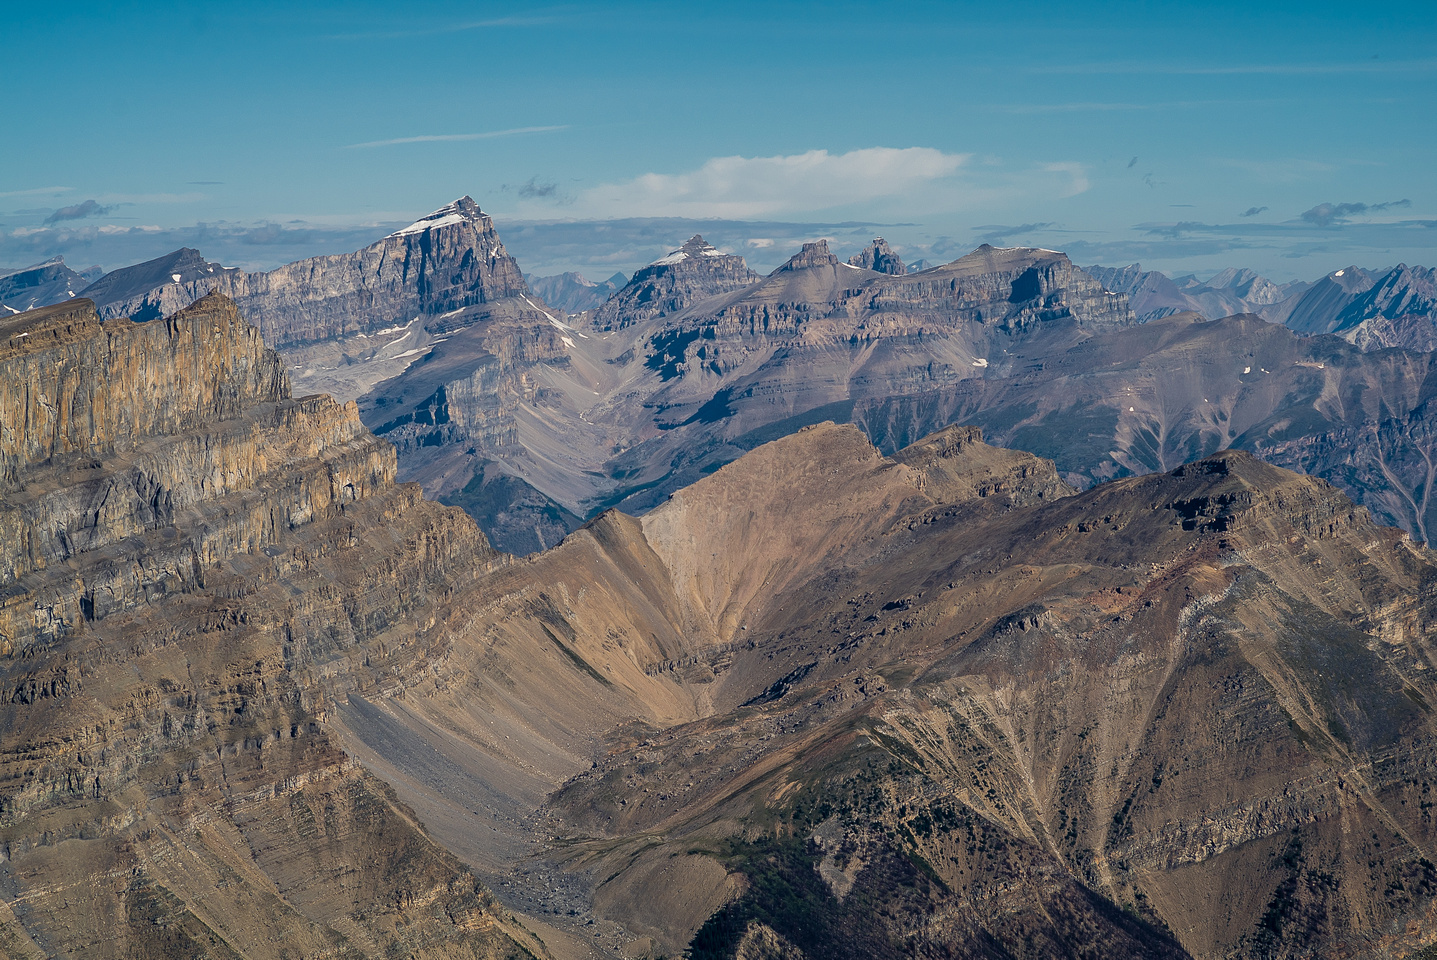 Amazing view of Corona Ridge (L) with Cline, Troll, Lion, Dasent and Lioness peaks beyond.